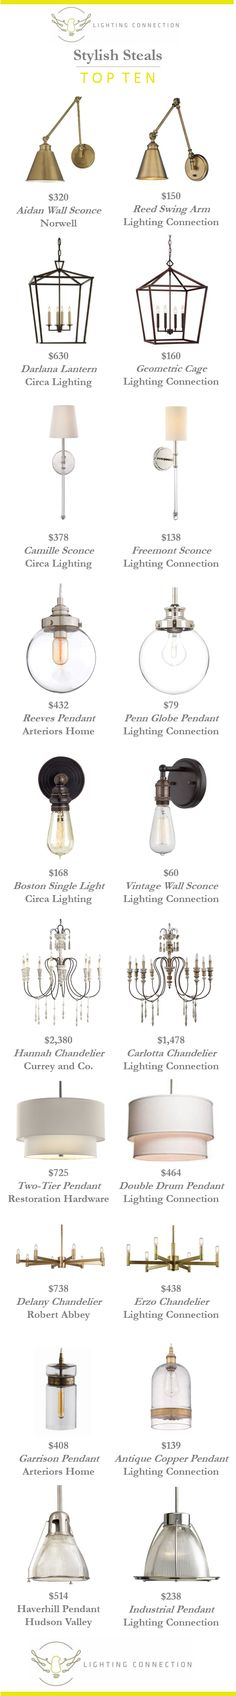 Our tops picks for look-for-less lighting.  Why pay top dollar for designer chandeliers, pendants and sconces when there's a great stylish steal.  www.lightingconnection.com